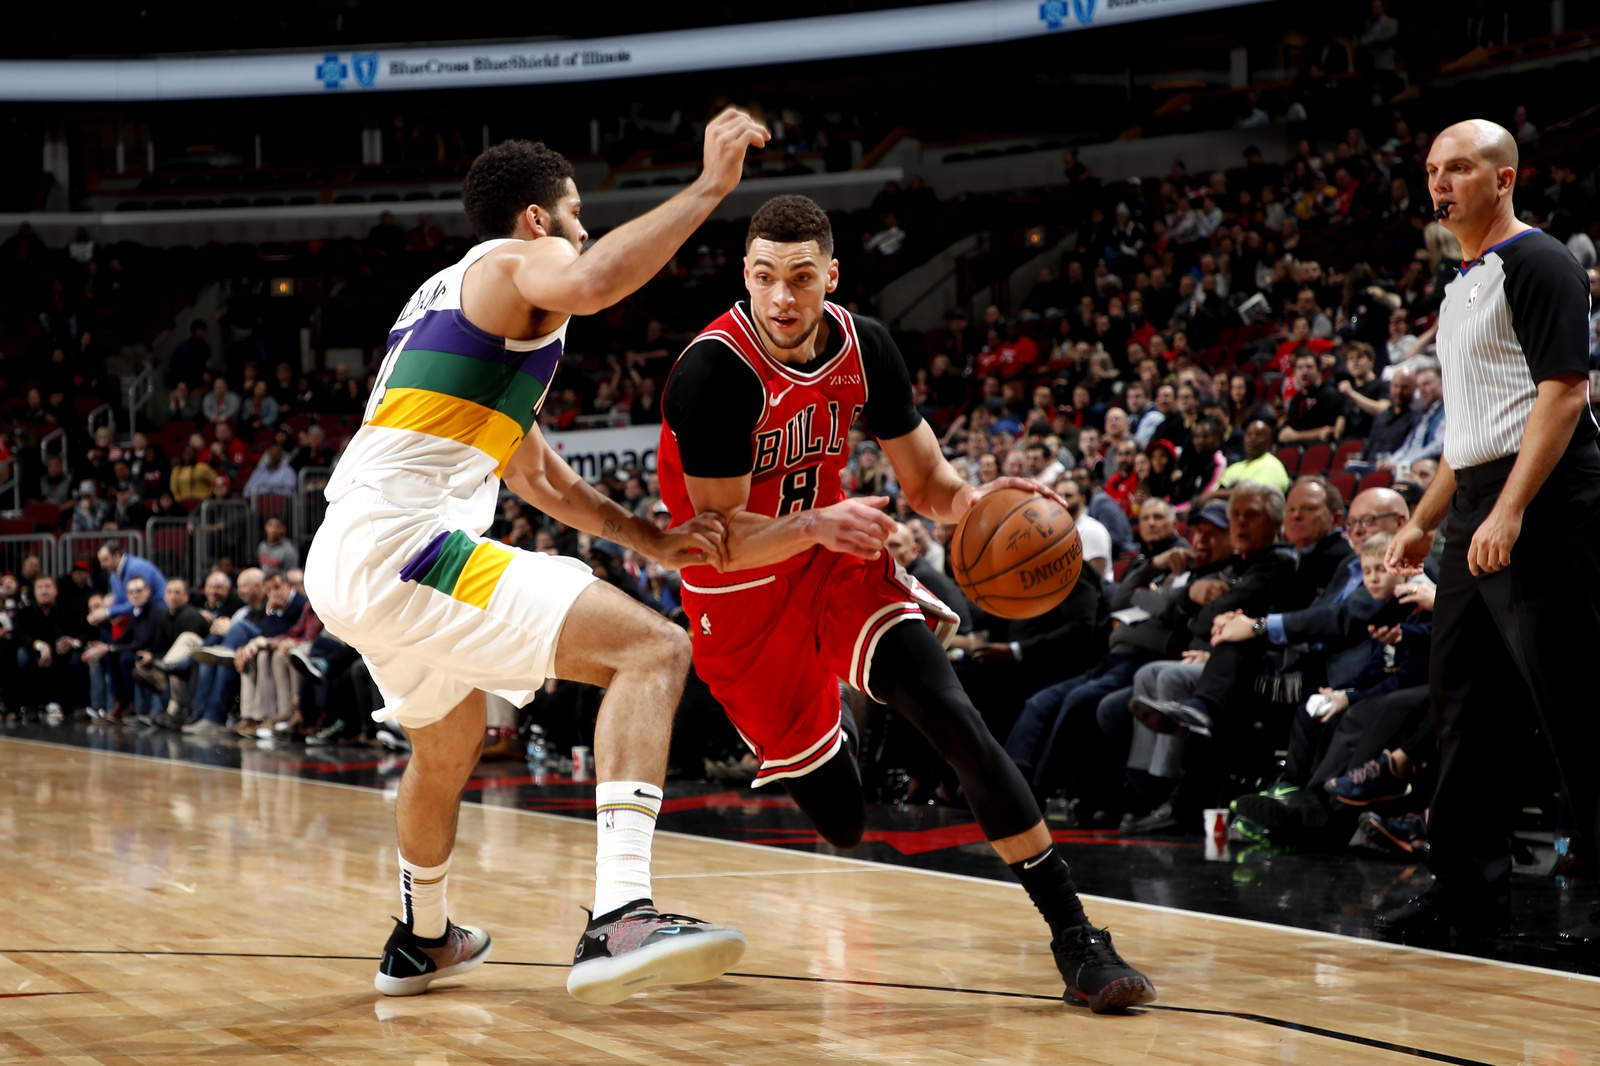 Zach LaVine #8 of the Chicago Bulls handles the ball against the New Orleans Pelicans on February 6, 2019 at United Center in Chicago, Illinois